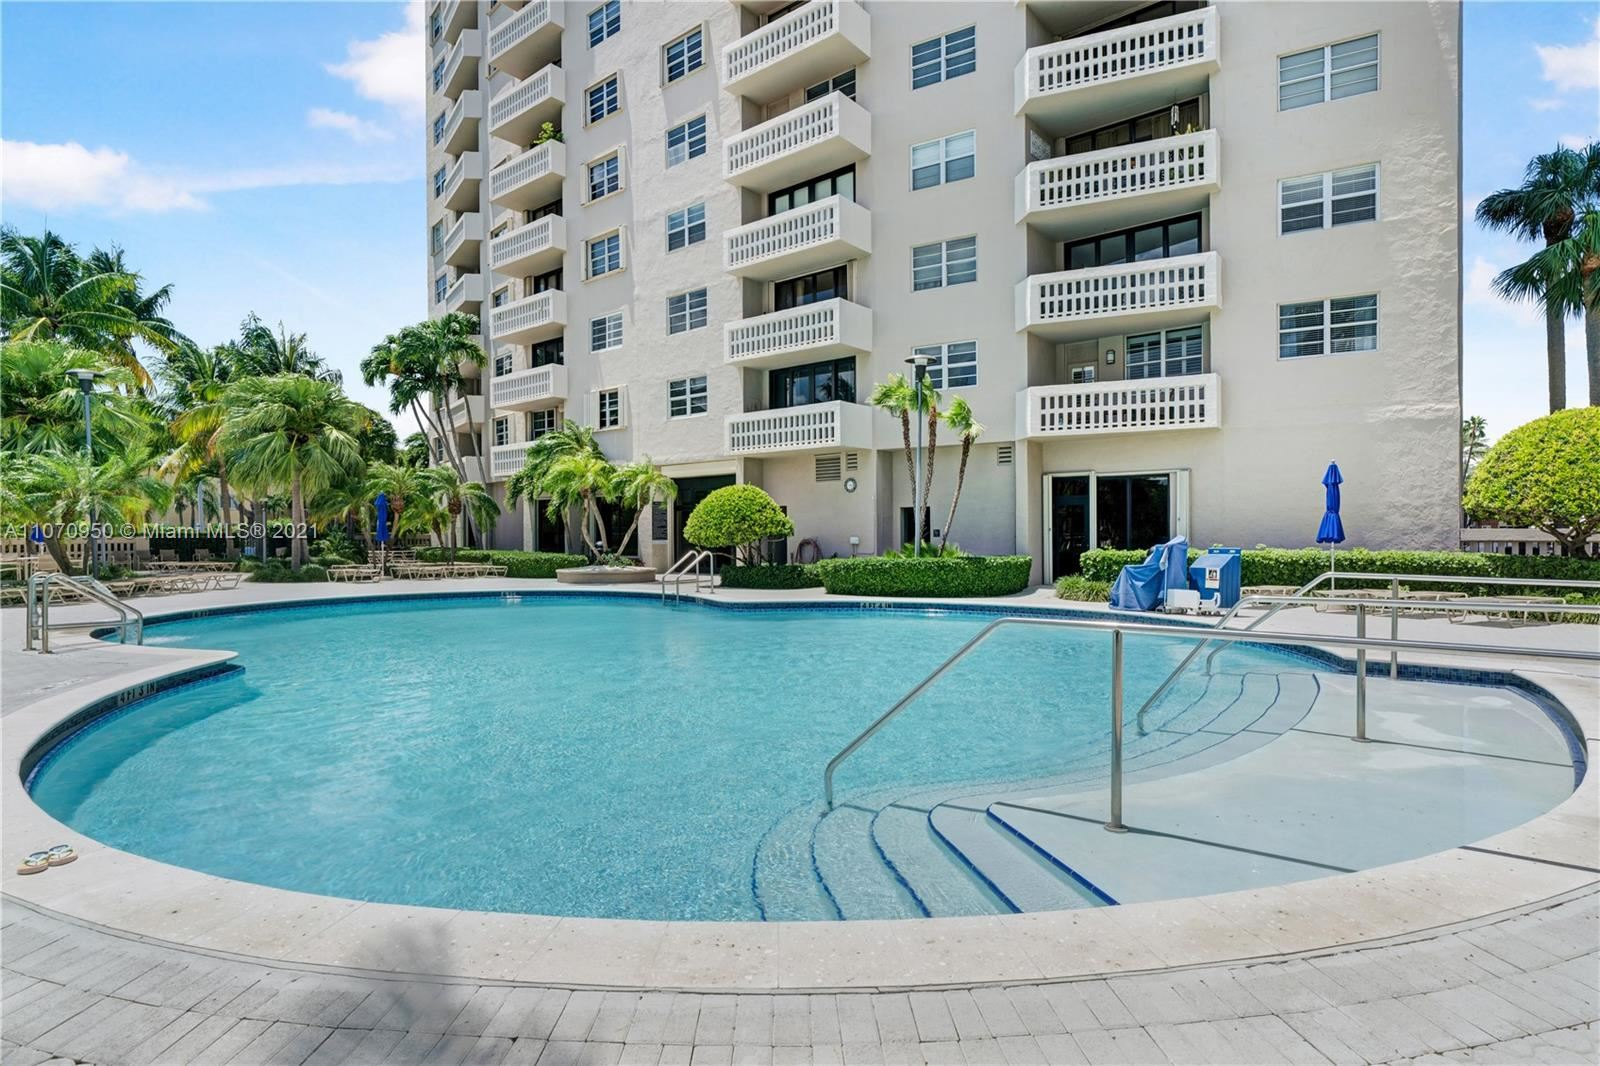 Photo of 90 Edgewater Dr #815, Coral Gables, FL 33133 (MLS # A11070950)